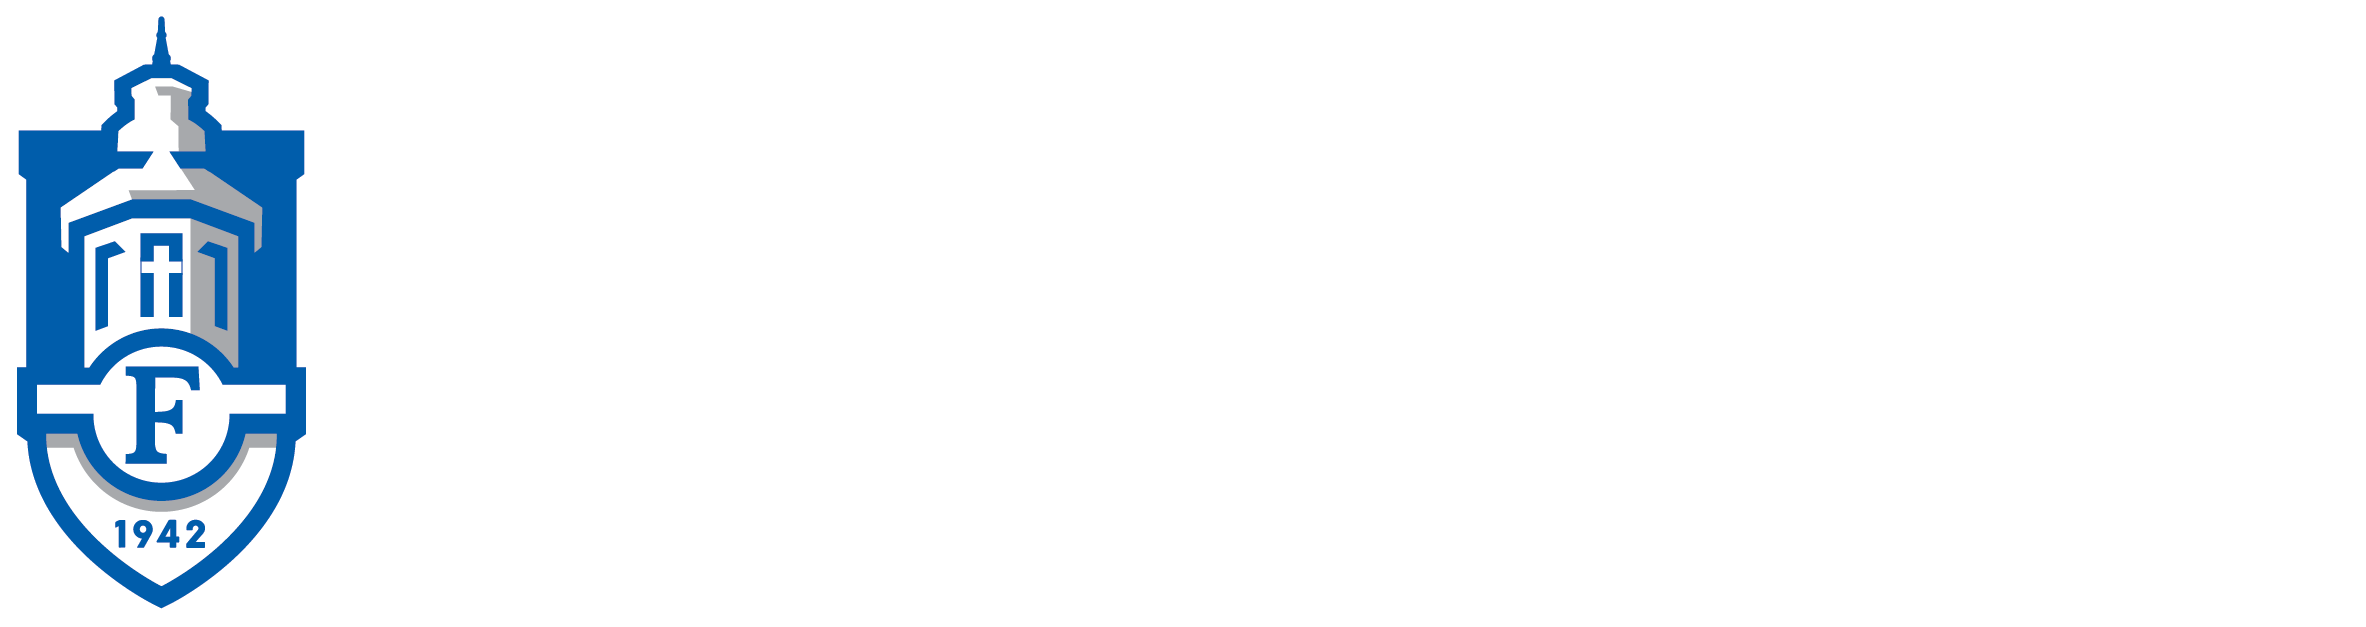 Doctor of Physical Therapy Logo